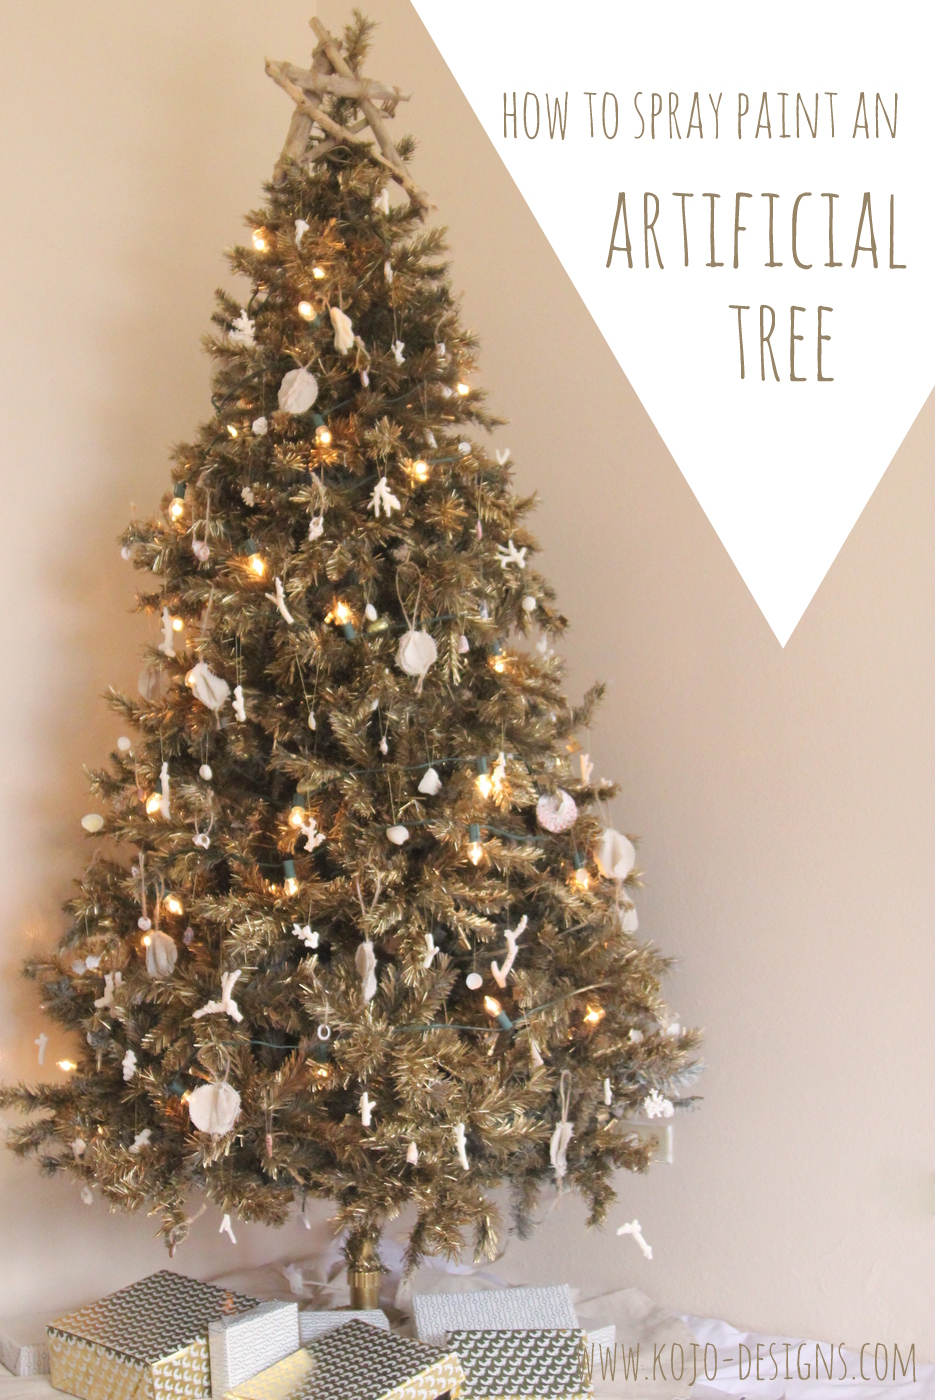 Can You Spray Paint A Artificial Christmas Tree